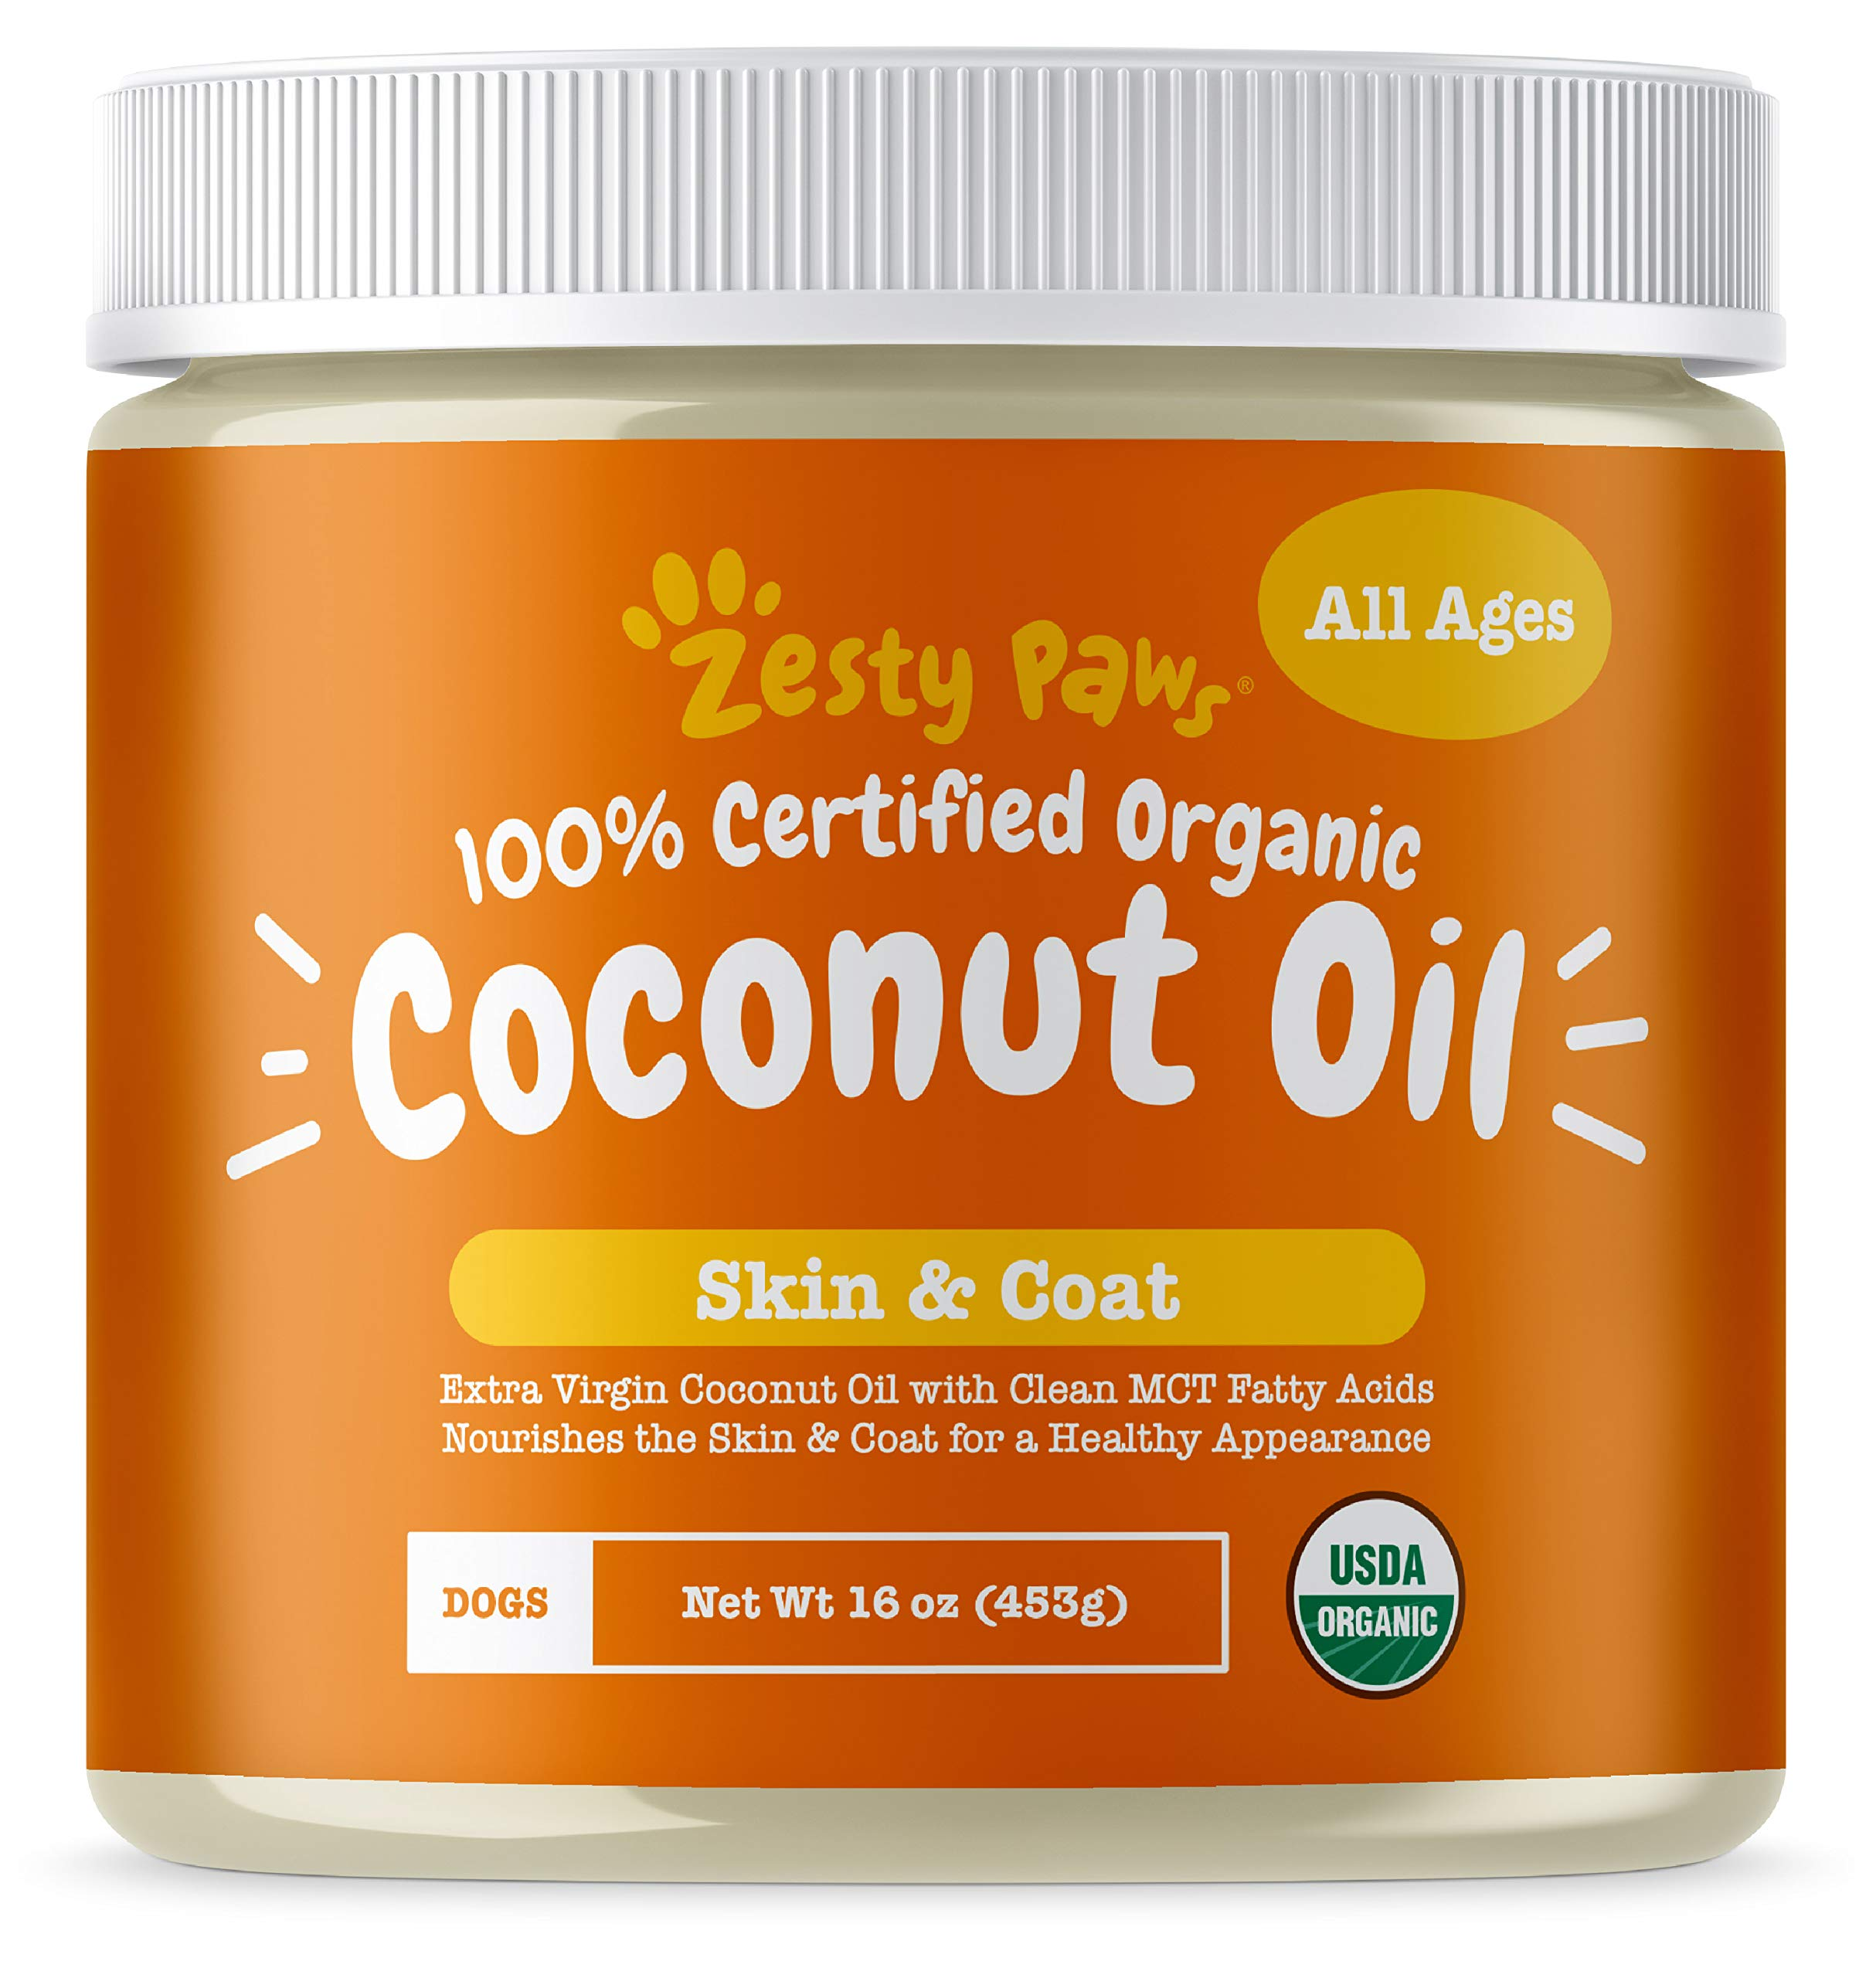 Zesty Paws Coconut Oil for Dogs - Certified Organic & Extra Virgin Superfood Supplement - Anti Itch & Hot Spot Treatment - for Dry Skin on Elbows & Nose - Natural Digestive & Immune Support - 16 OZ by Zesty Paws